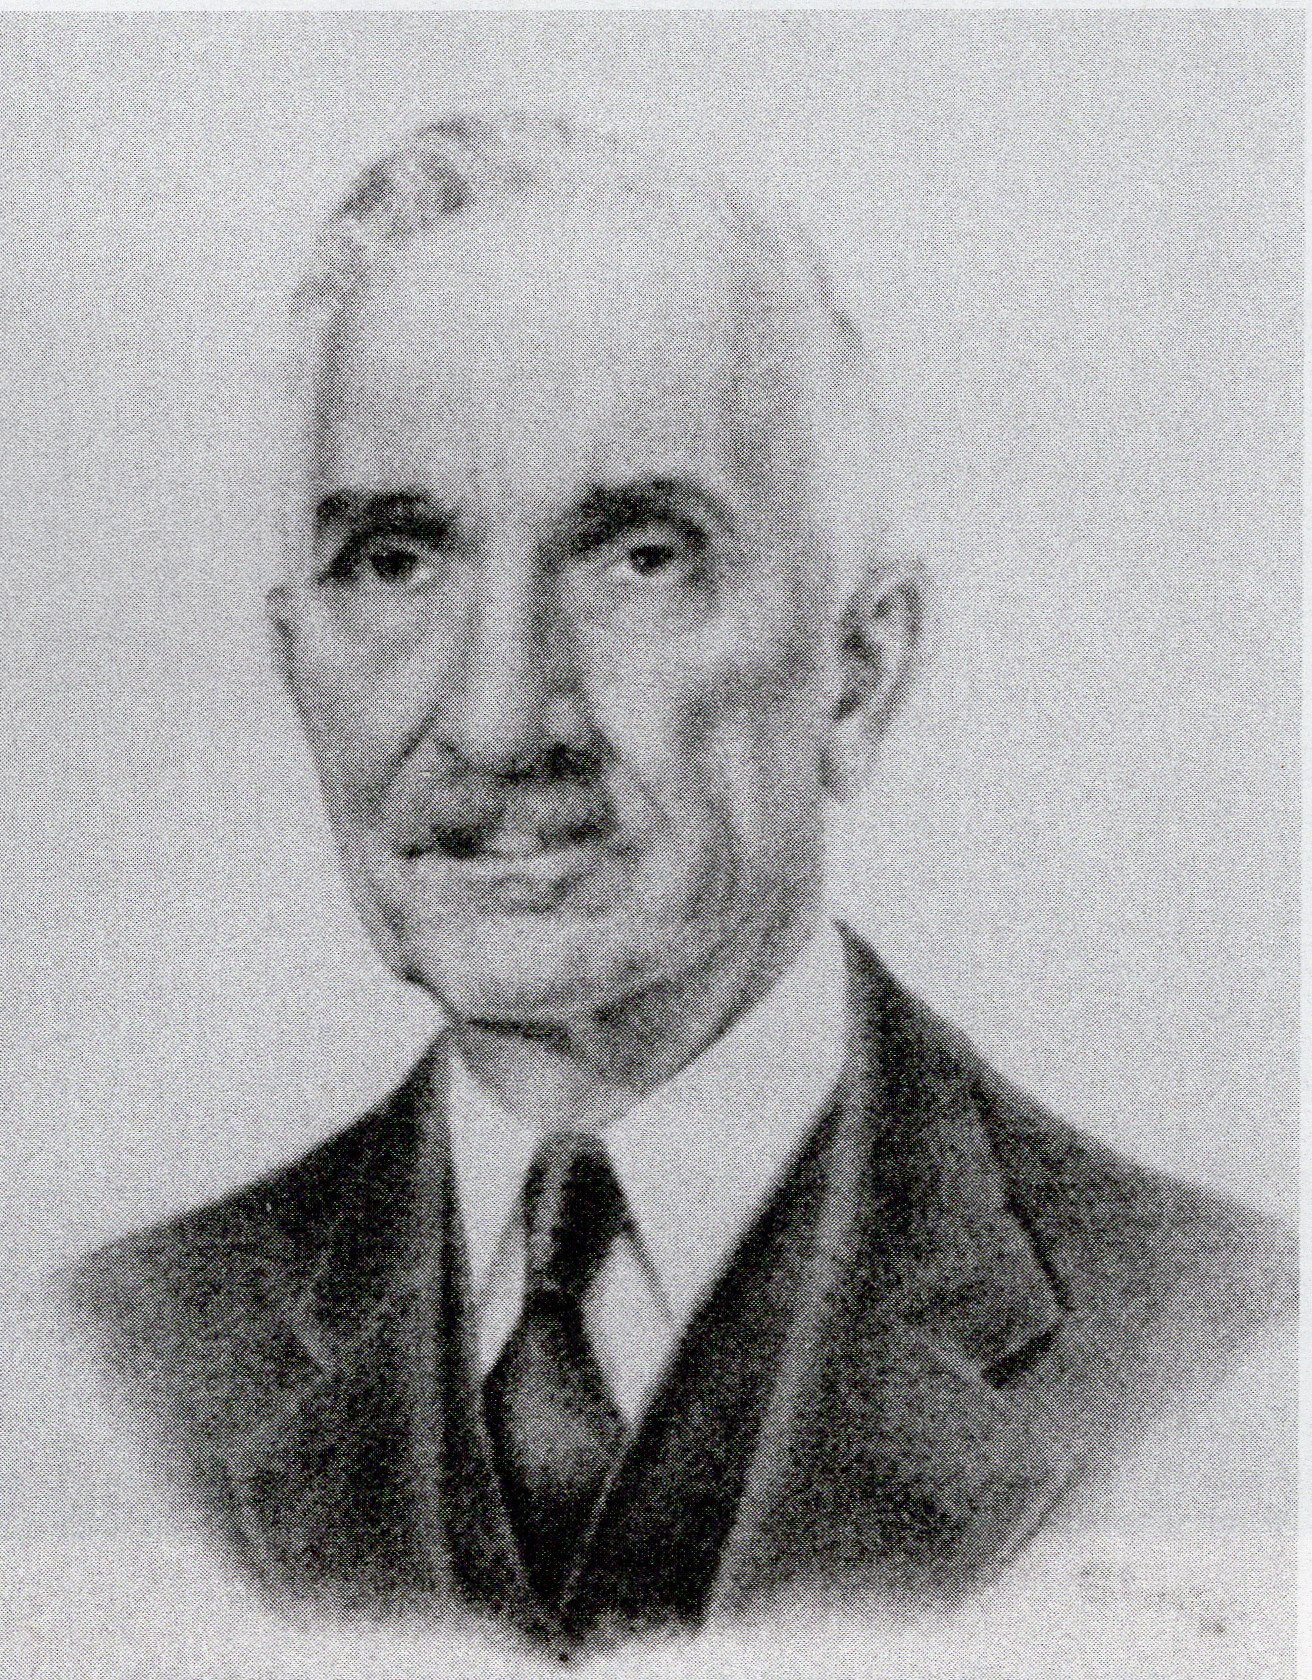 Mayor L. Henry Oakes, for whom the field is named, served the city from 1930-1946. Born in 1873, he grew up in his family's log cabin--which would have been one of South Charleston's first buildings, built well before the city's founding.